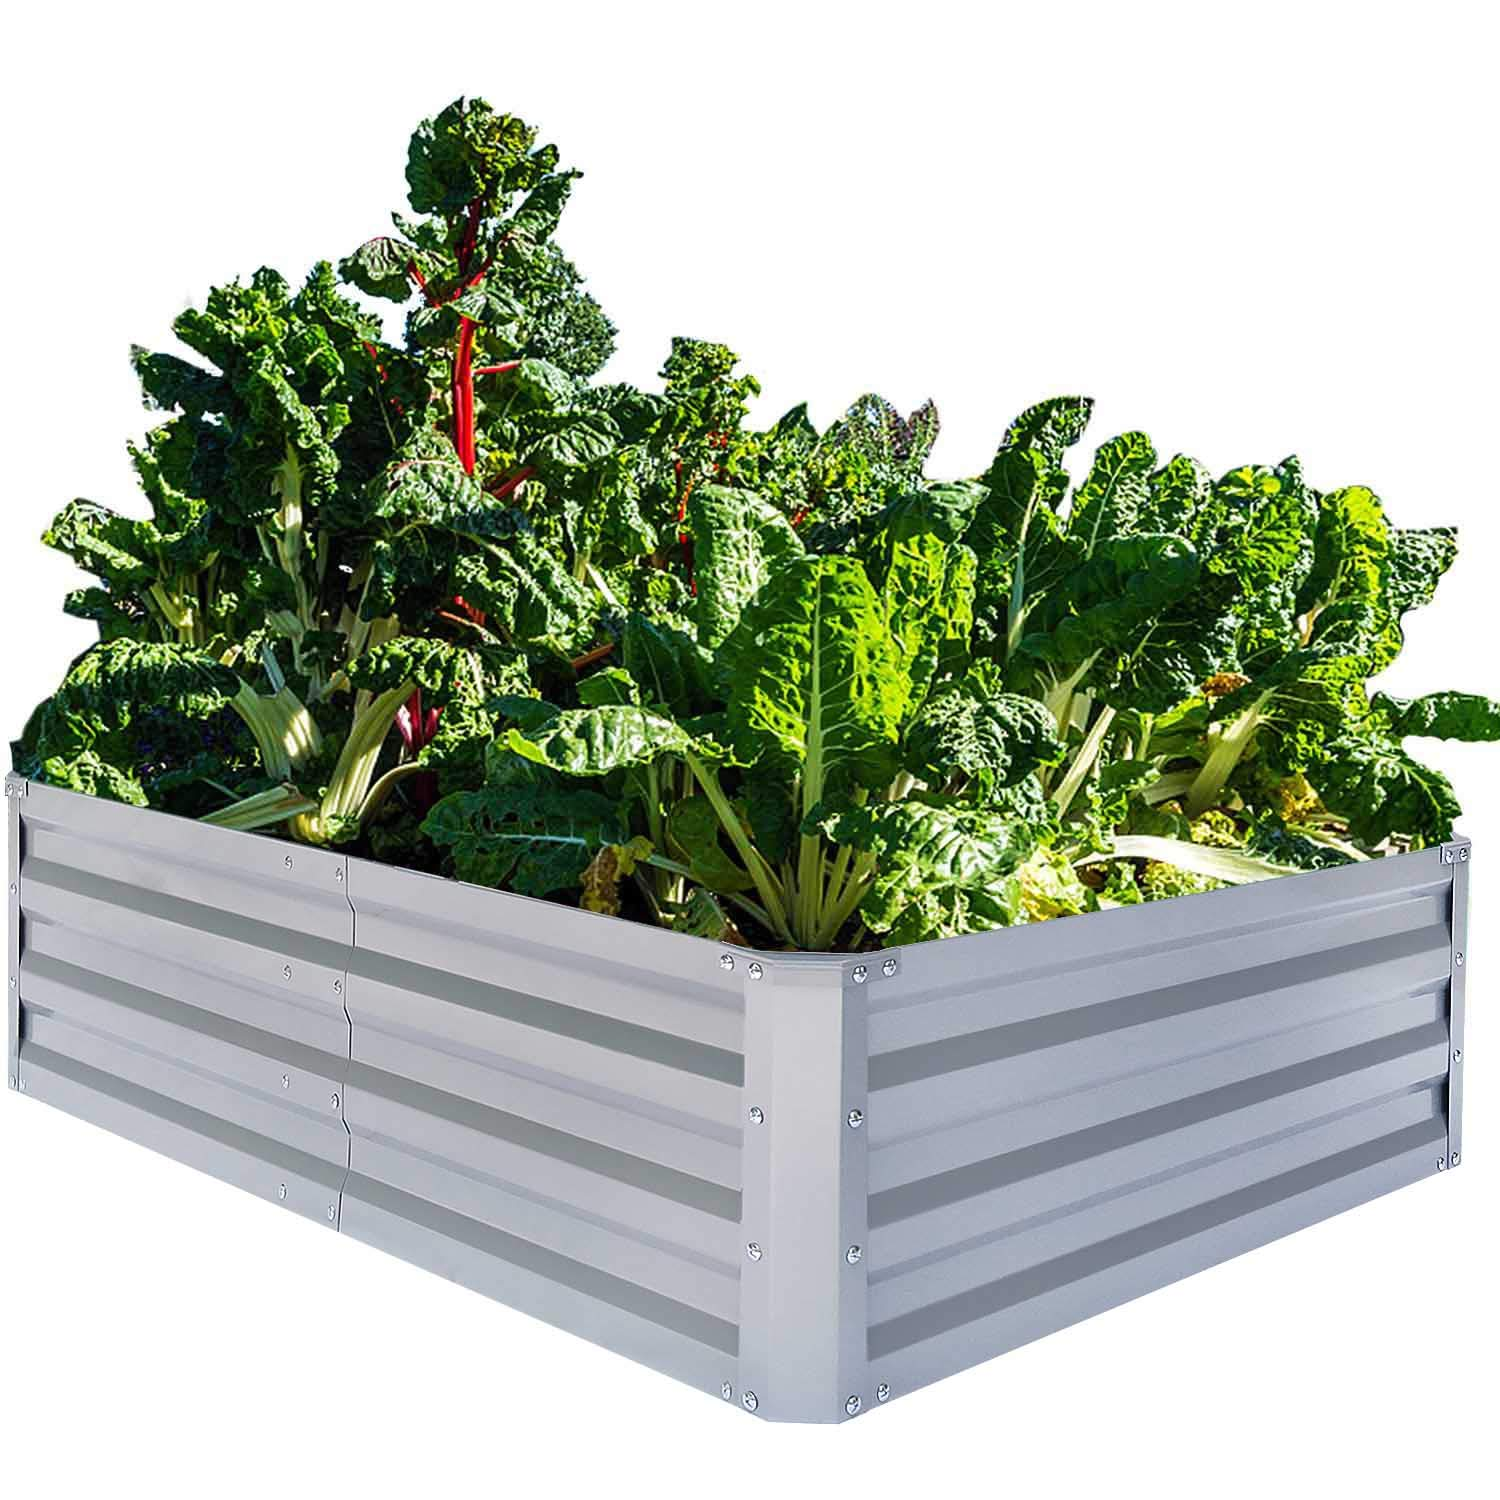 FOYUEE Galvanized Raised Garden Beds for Vegetables Metal Planter Boxes Outdoor Large Patio Bed Kit Planting Herb, 6x3x1ft